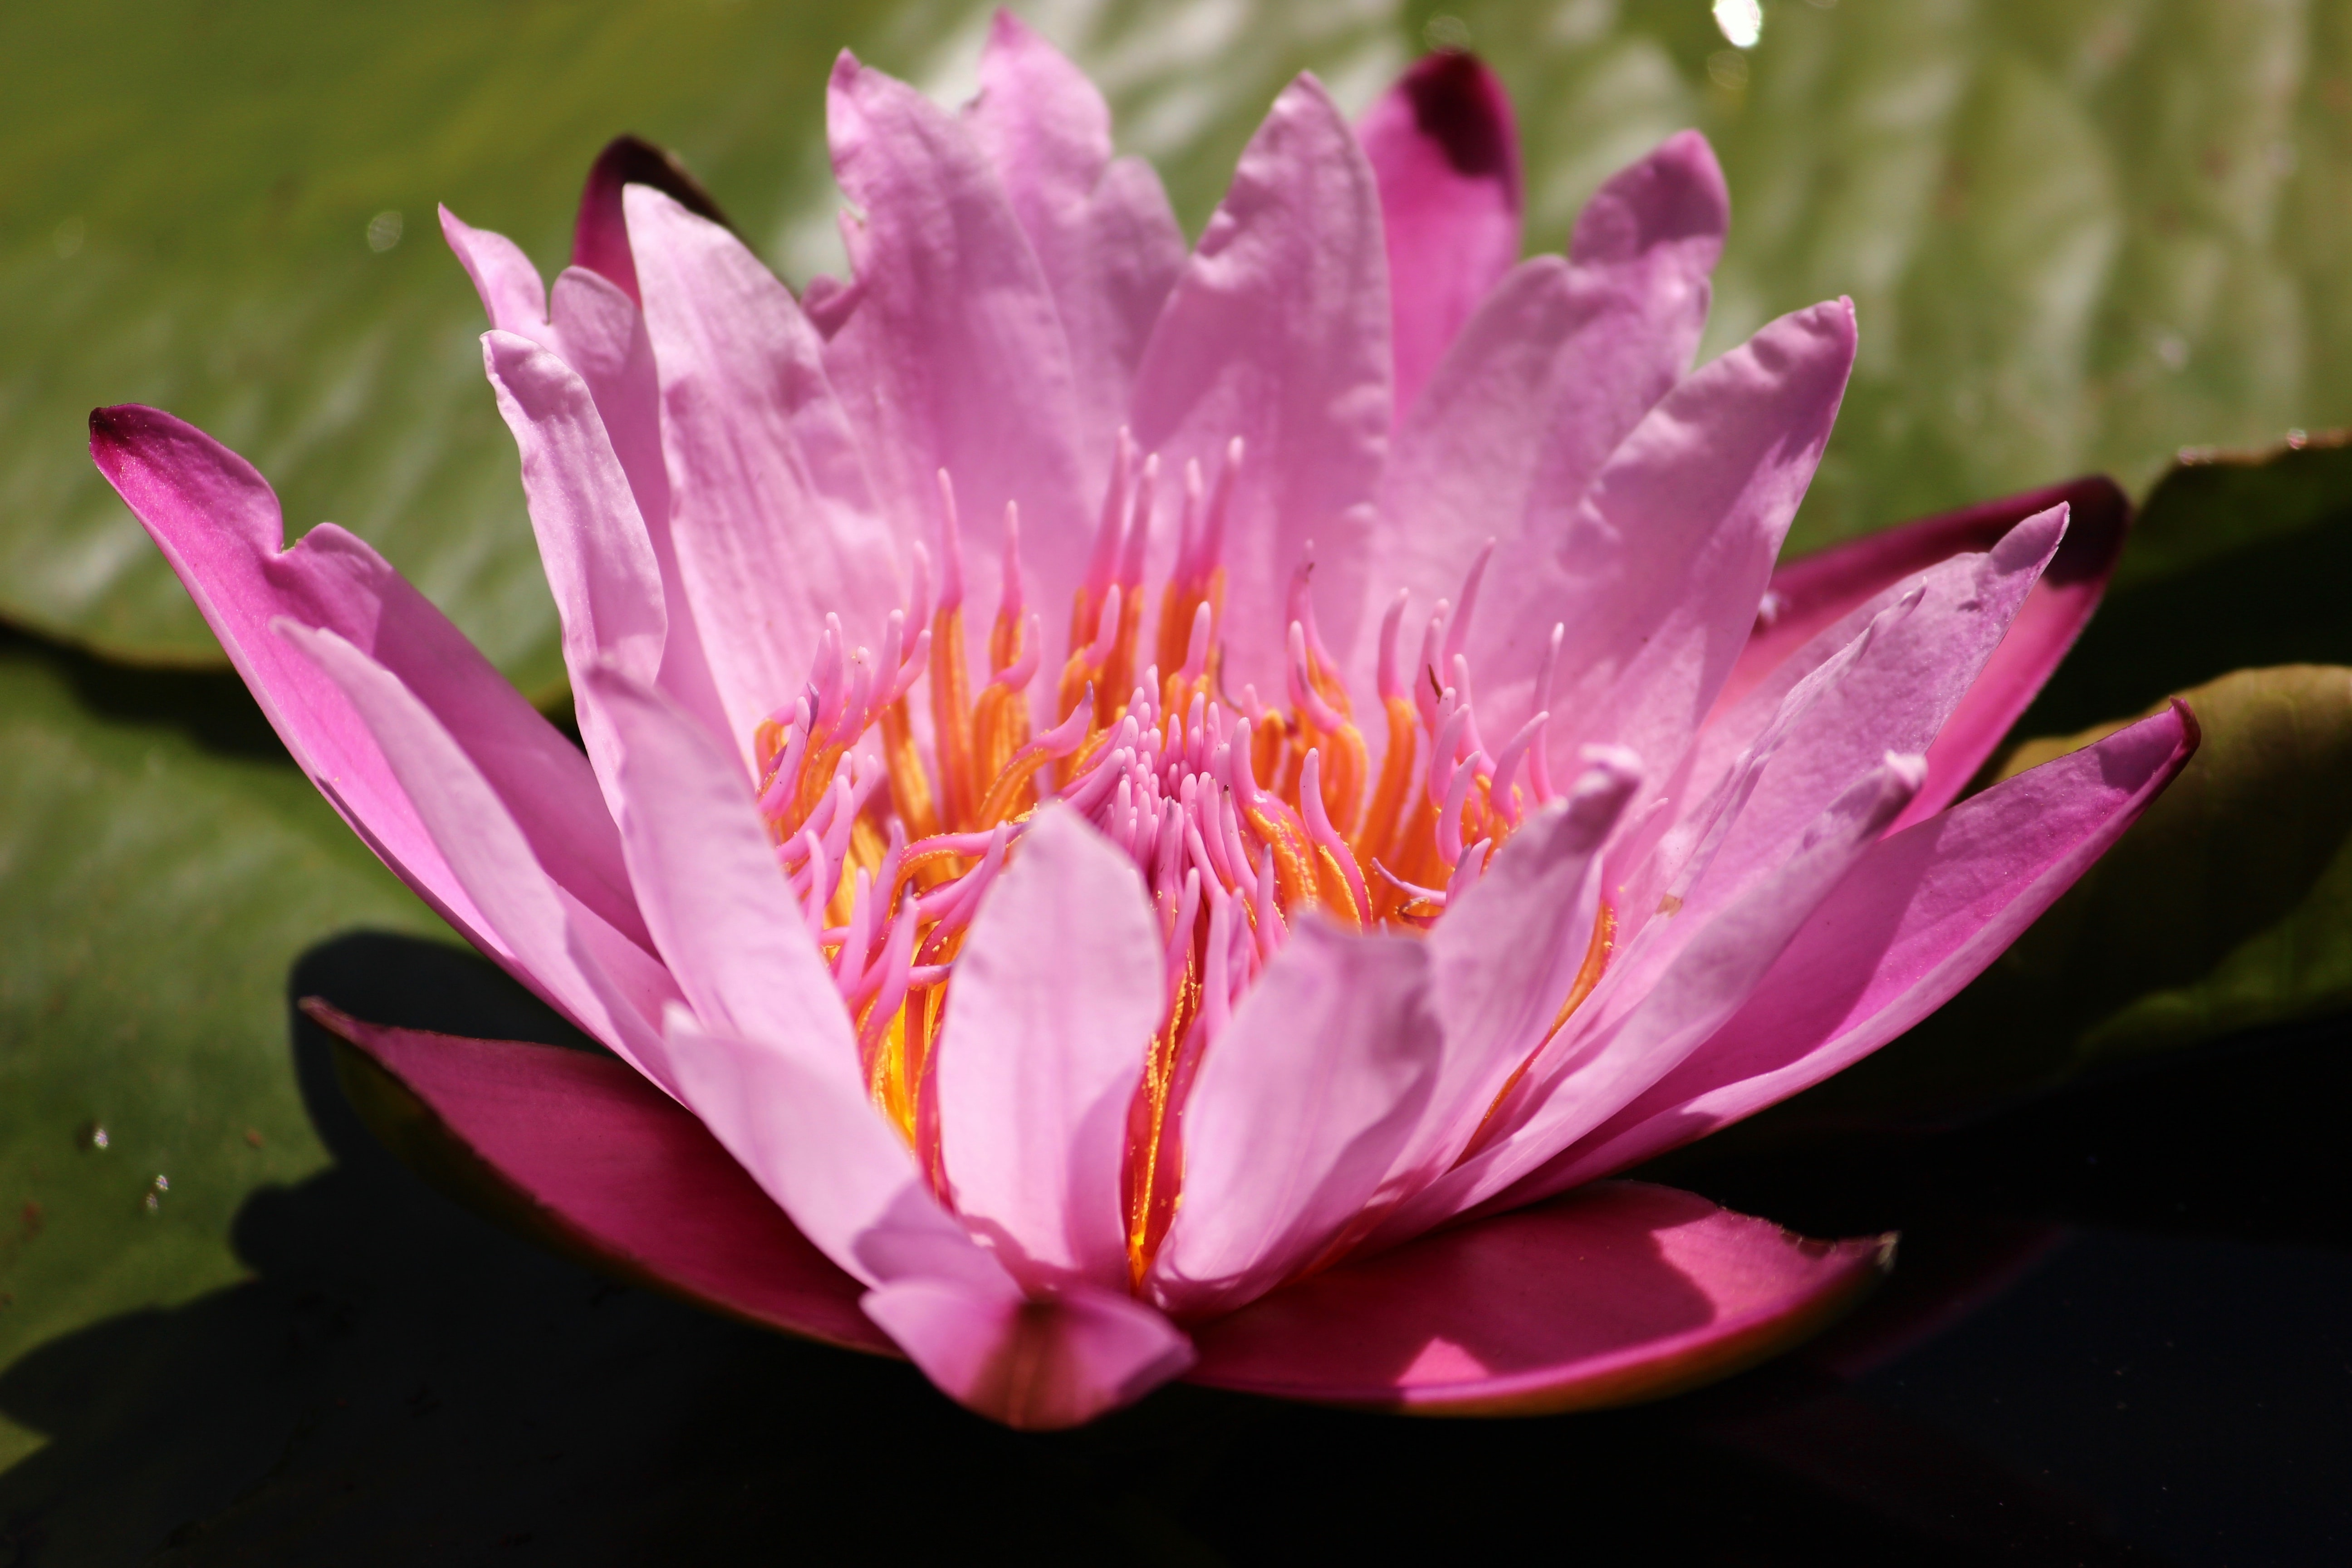 pink water lily during daytime